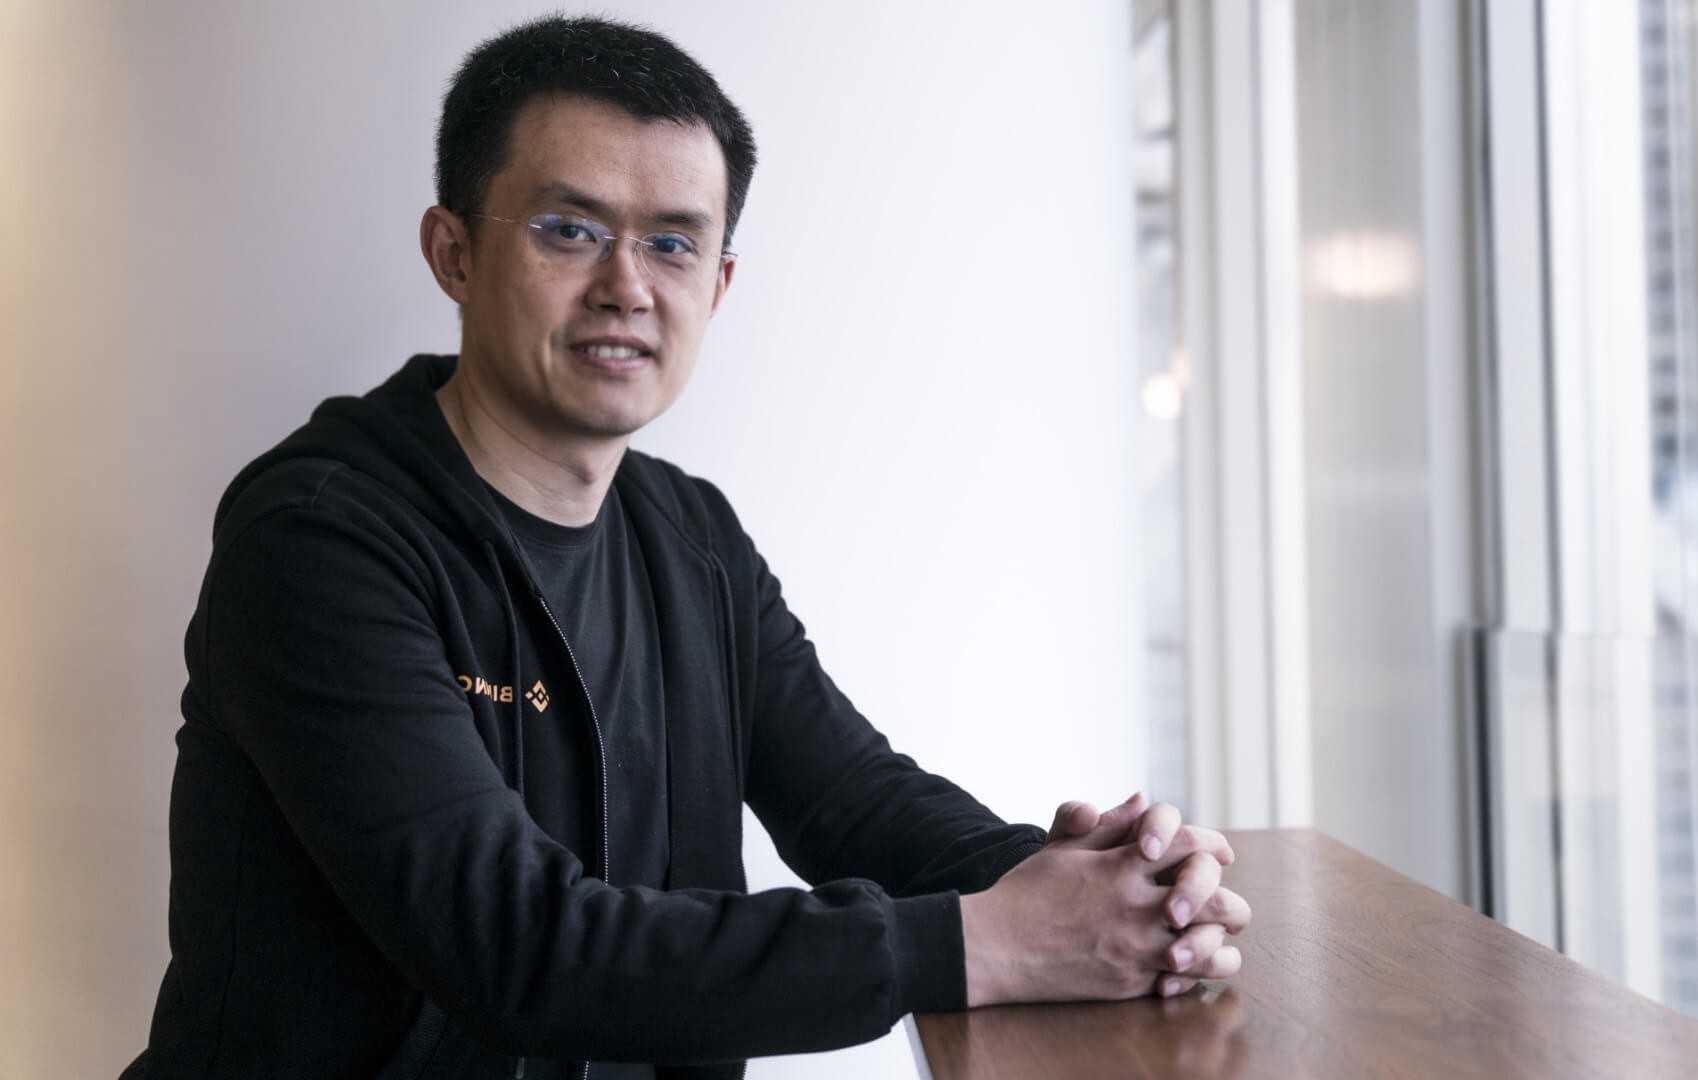 Changpeng Zhao (Binance) announces the acquisition of CoinMarketCap